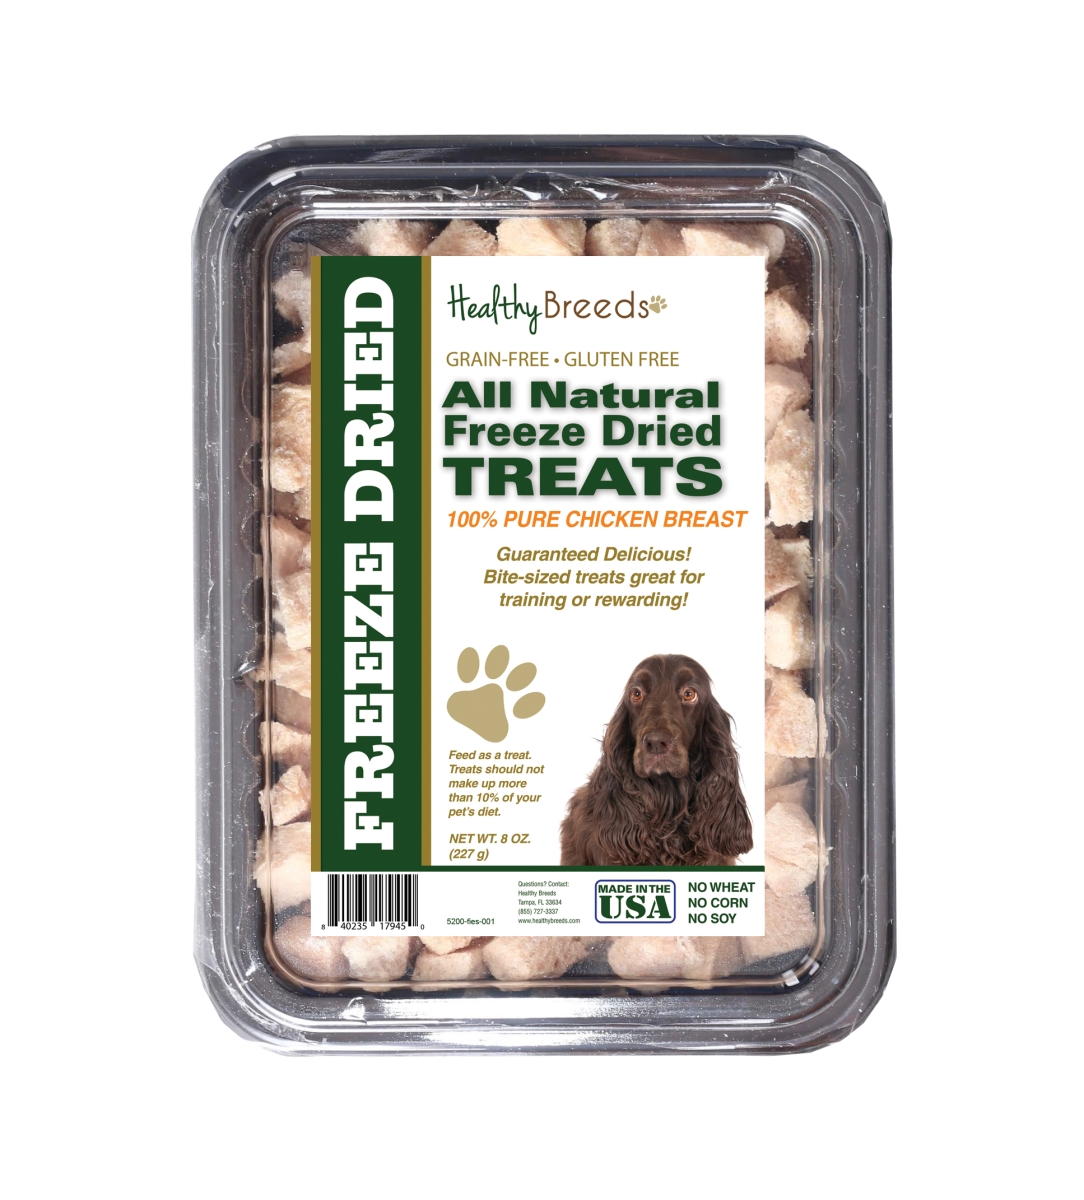 Healthy Breeds 840235179450 8 oz Field Spaniel All Natural Freeze Dried Treats Chicken Breast